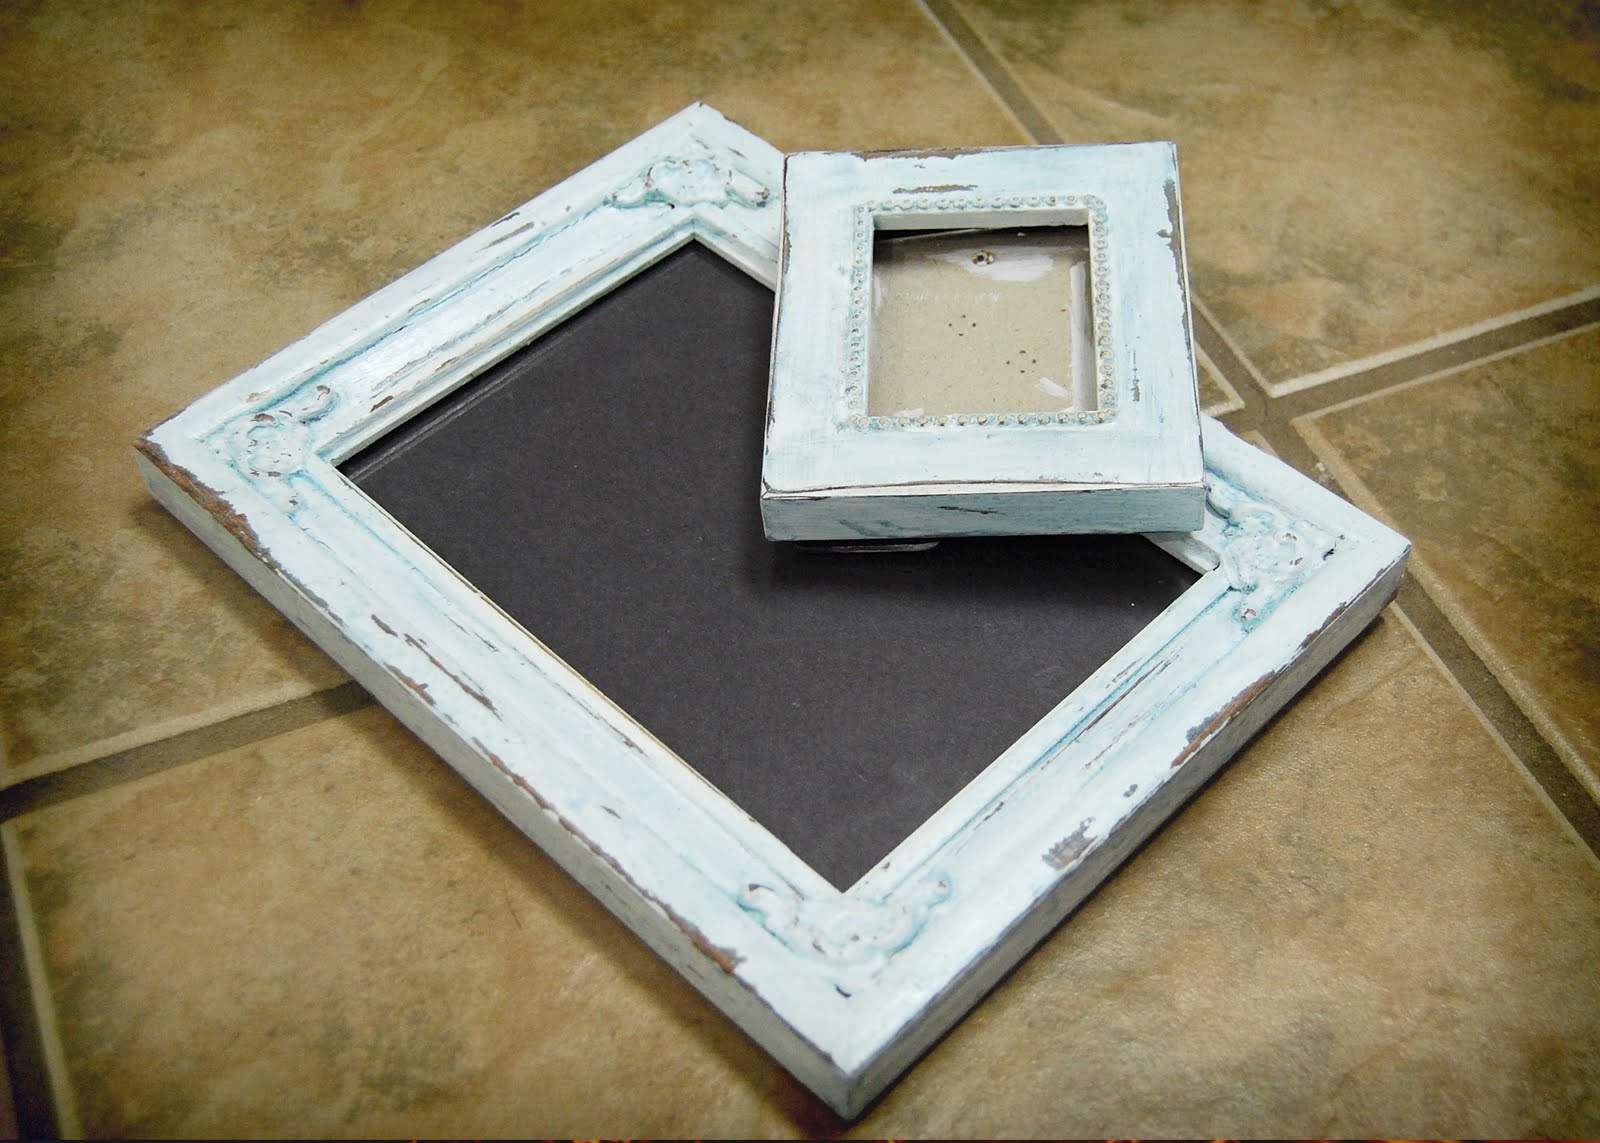 diy distressed wood picture frames | secondtofirst.com